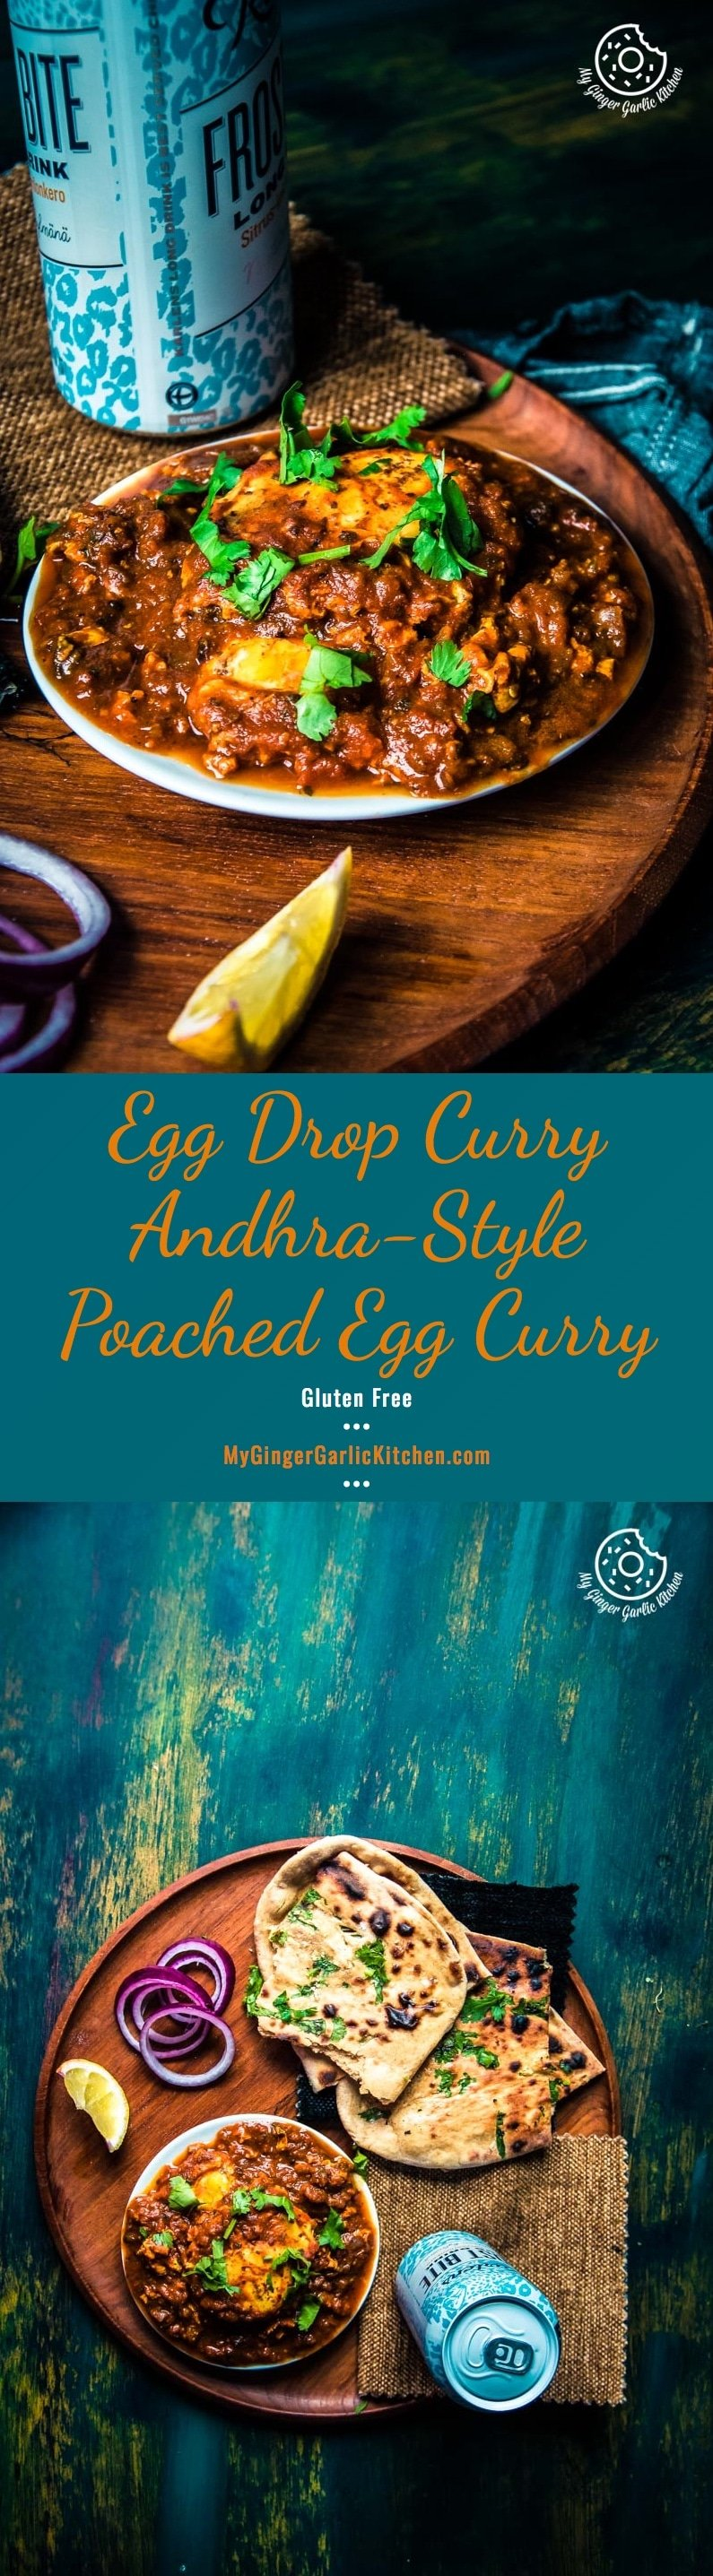 Egg Drop Curry Recipe | Andhra-Style Poached Egg Curry Recipe